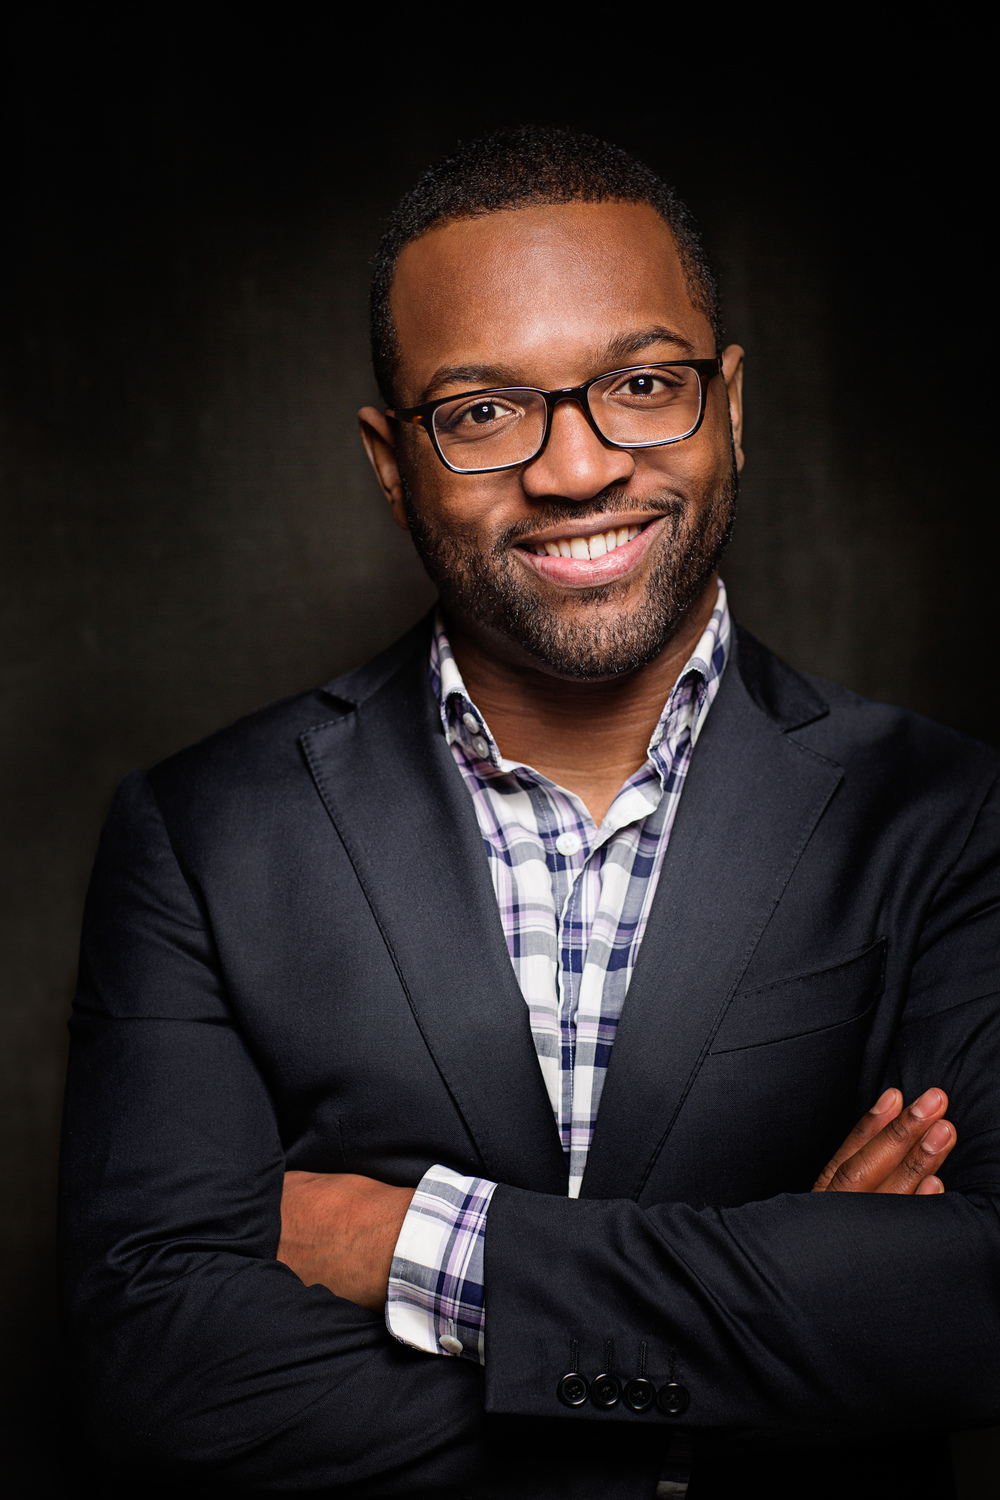 Baratunde Looking Like An Anchor (Color) high resolution